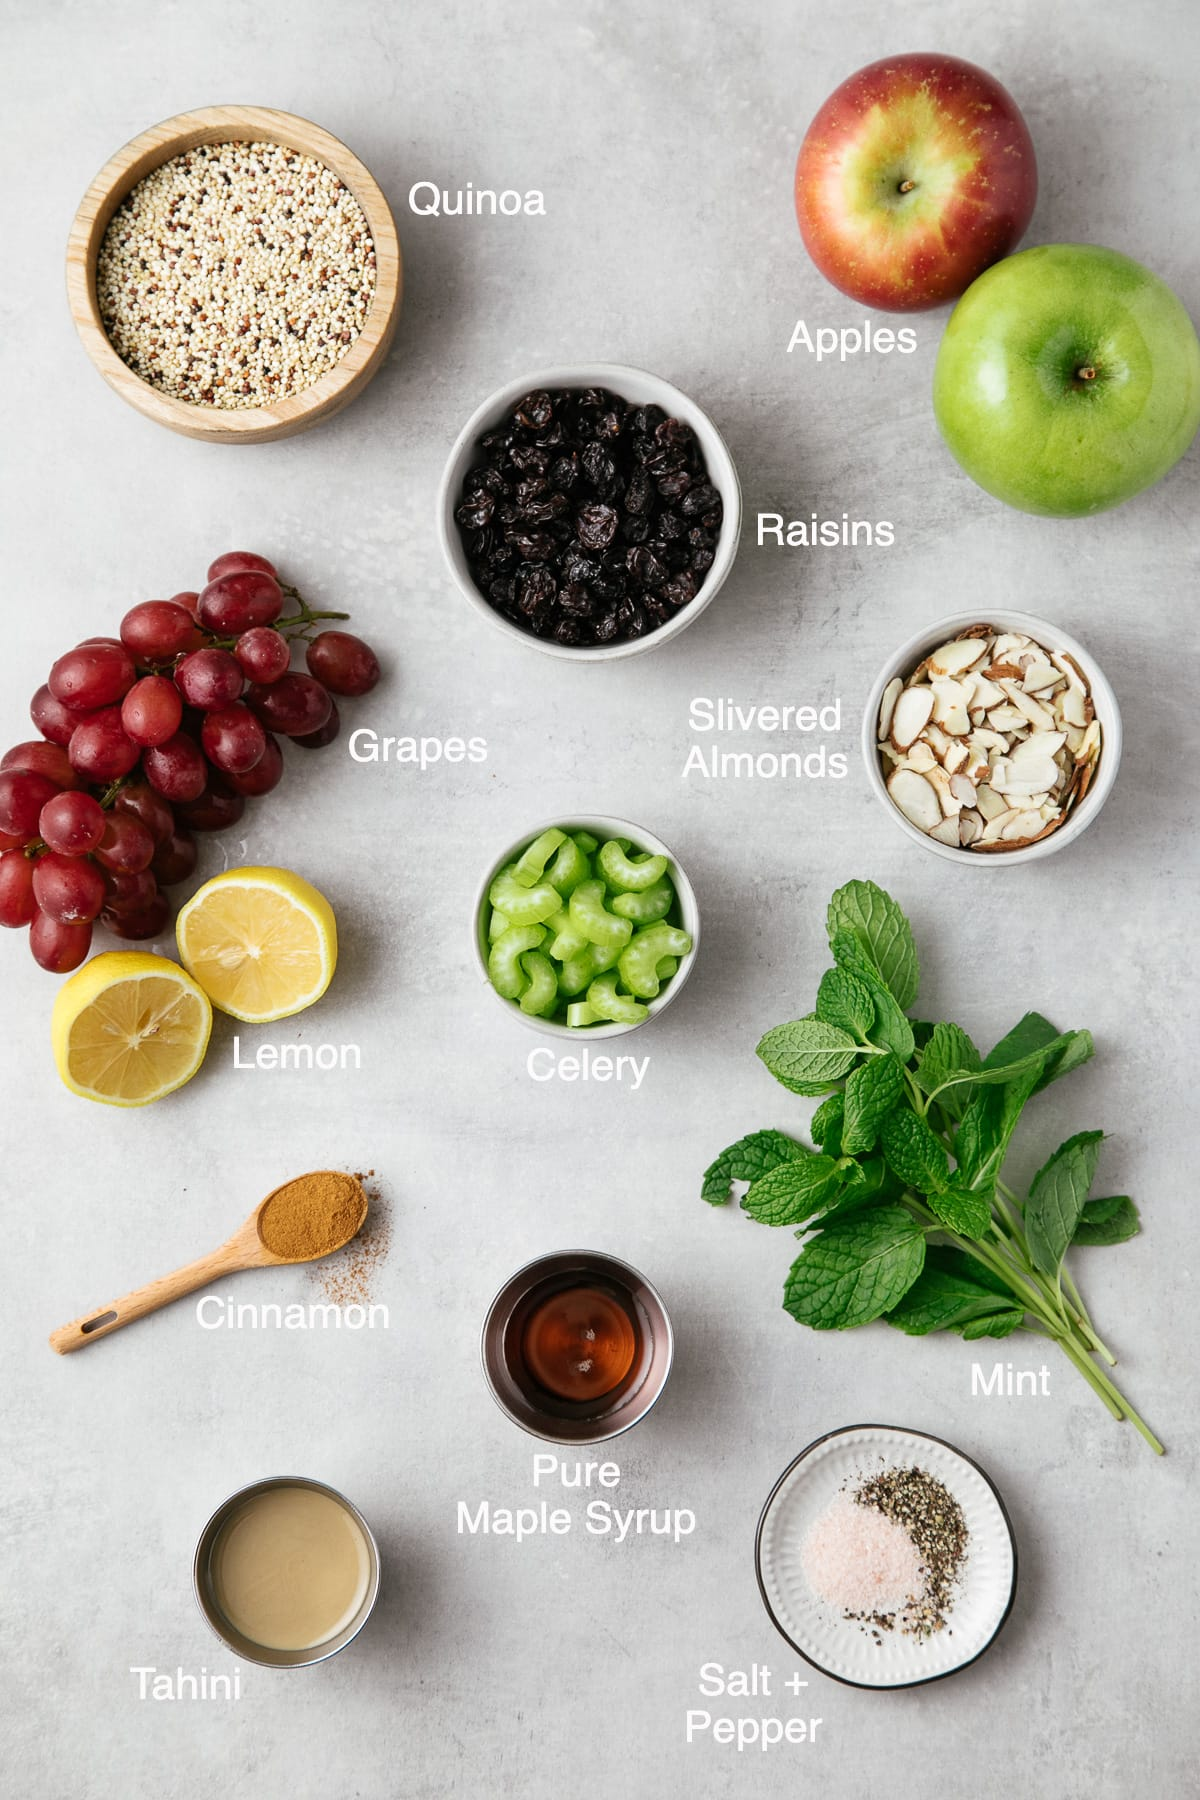 top down view of the ingredients used to make apple quinoa salad.